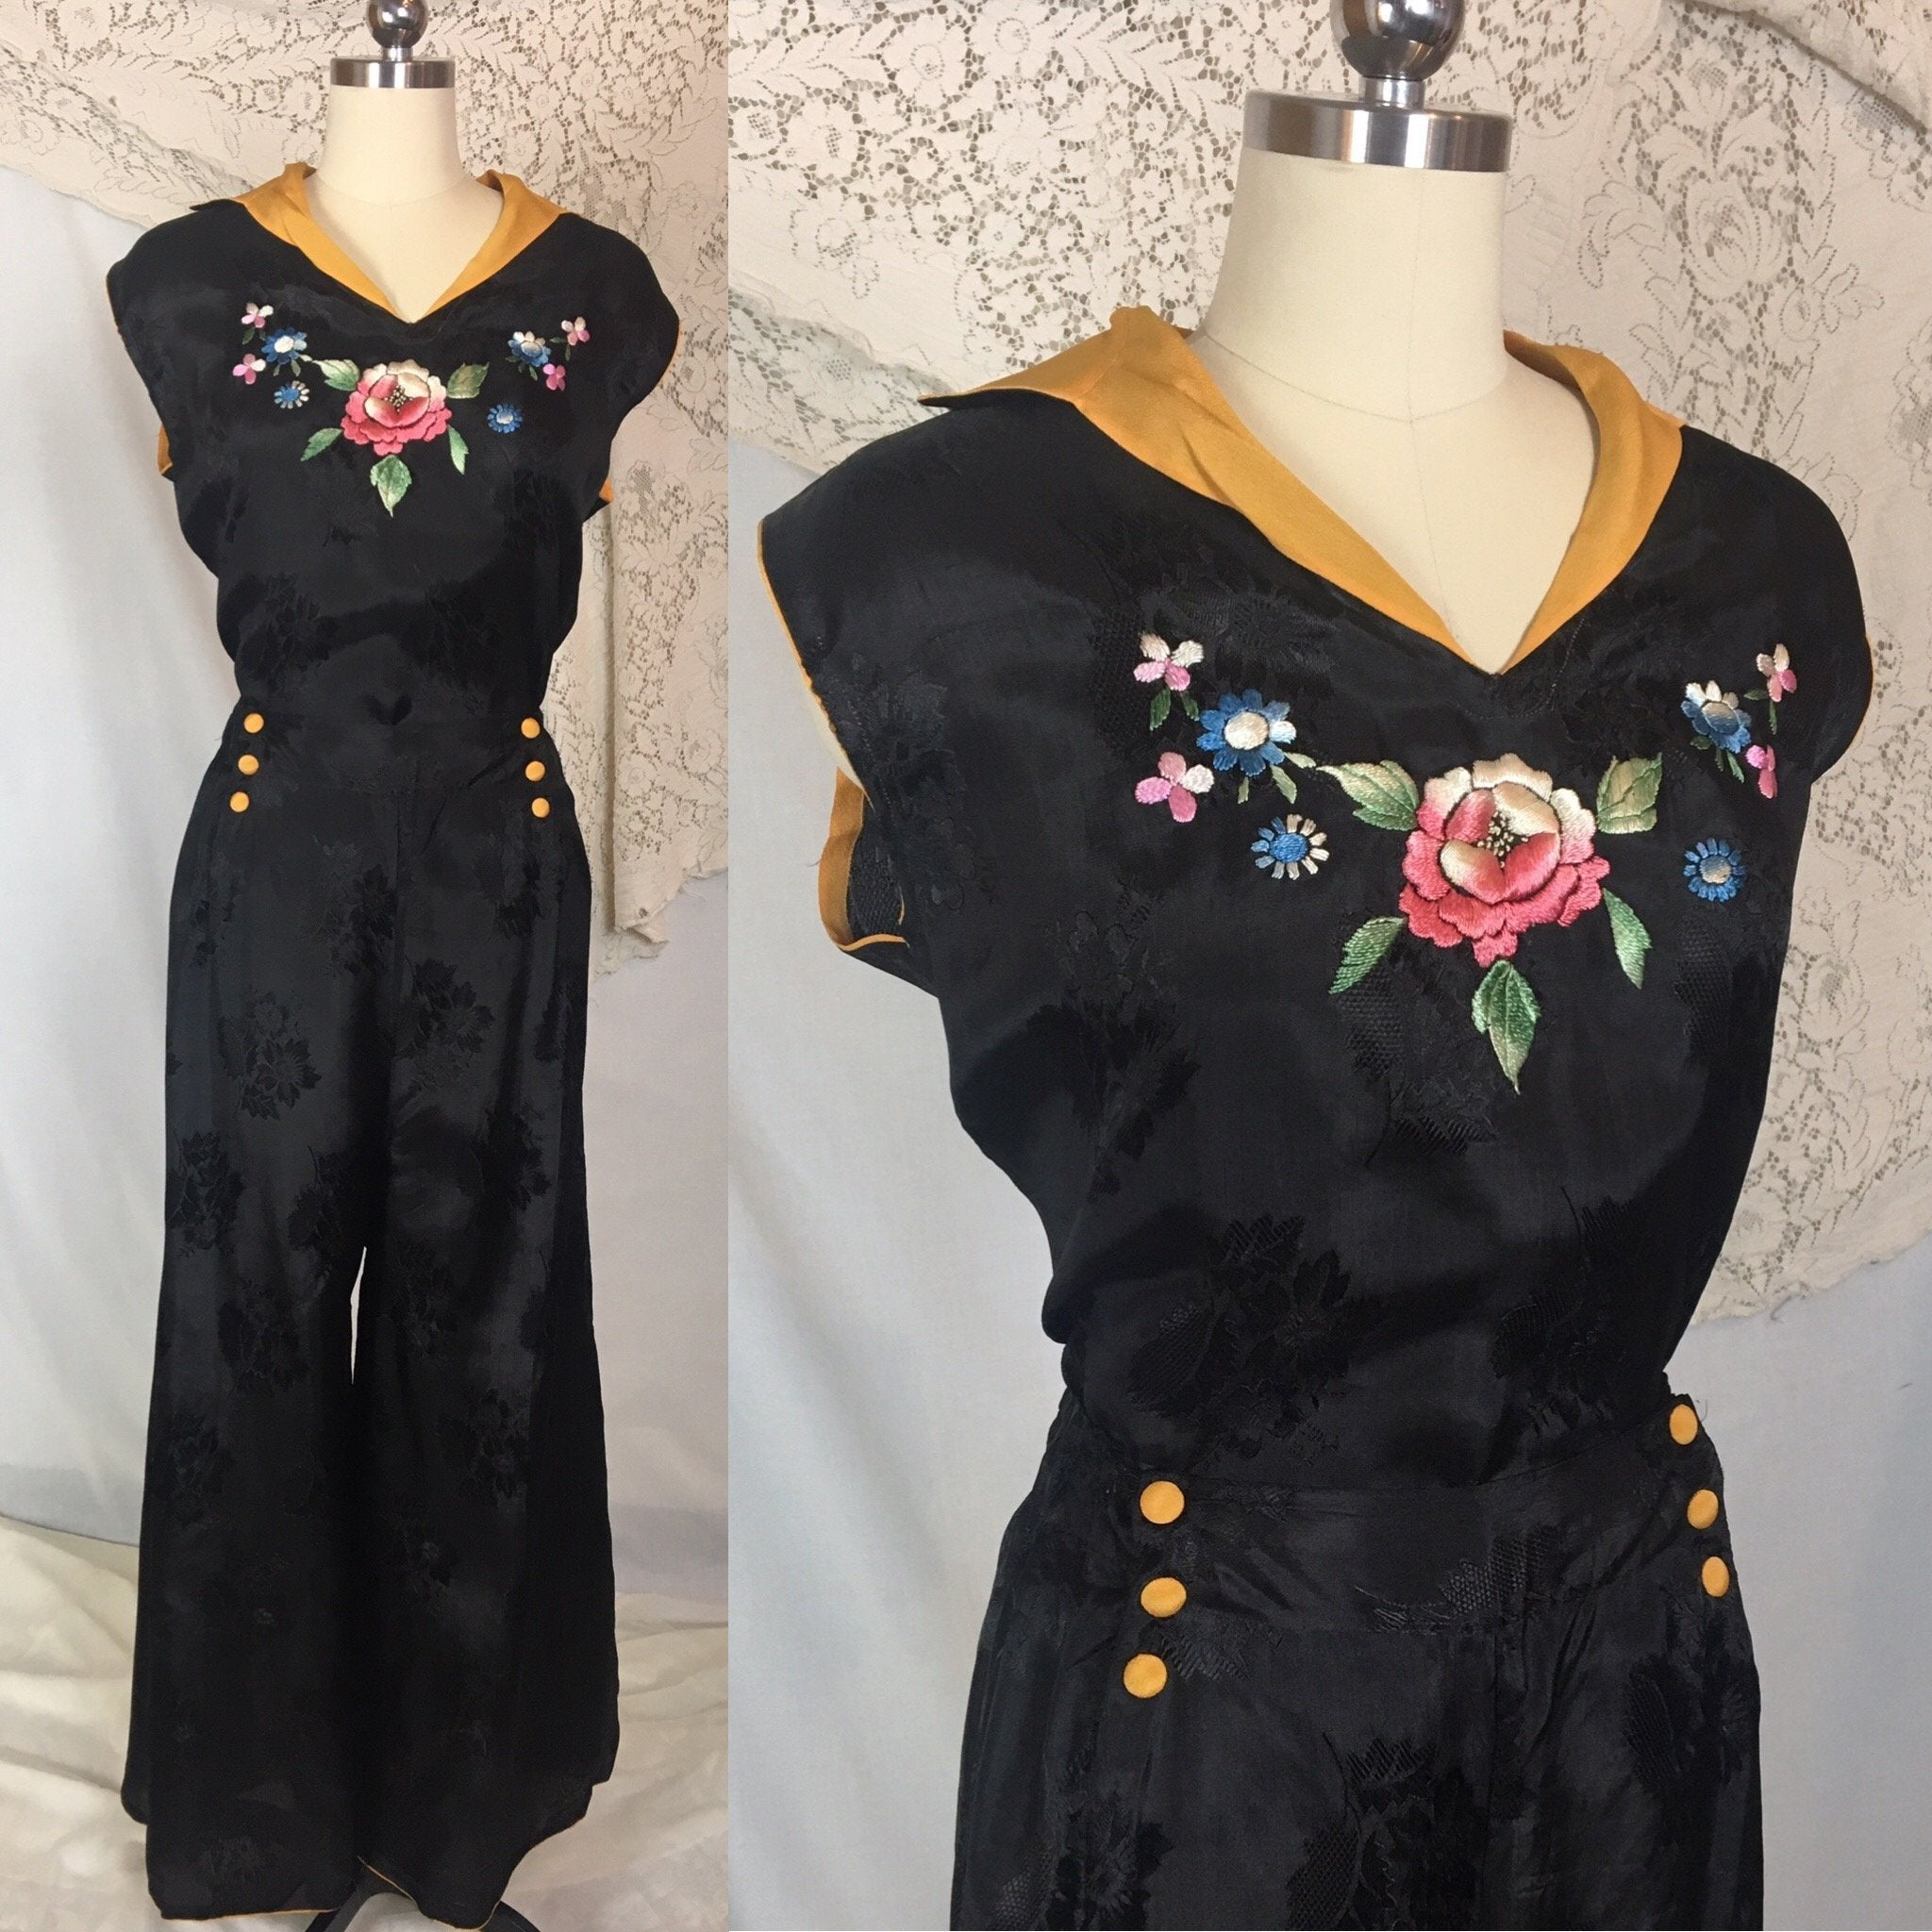 Vintage 1930's Beach Pajama Set | Black Rayon Satin Damask with Floral Embroidery | Made in Japan | Size M, LG, XL - Daggers & Dames